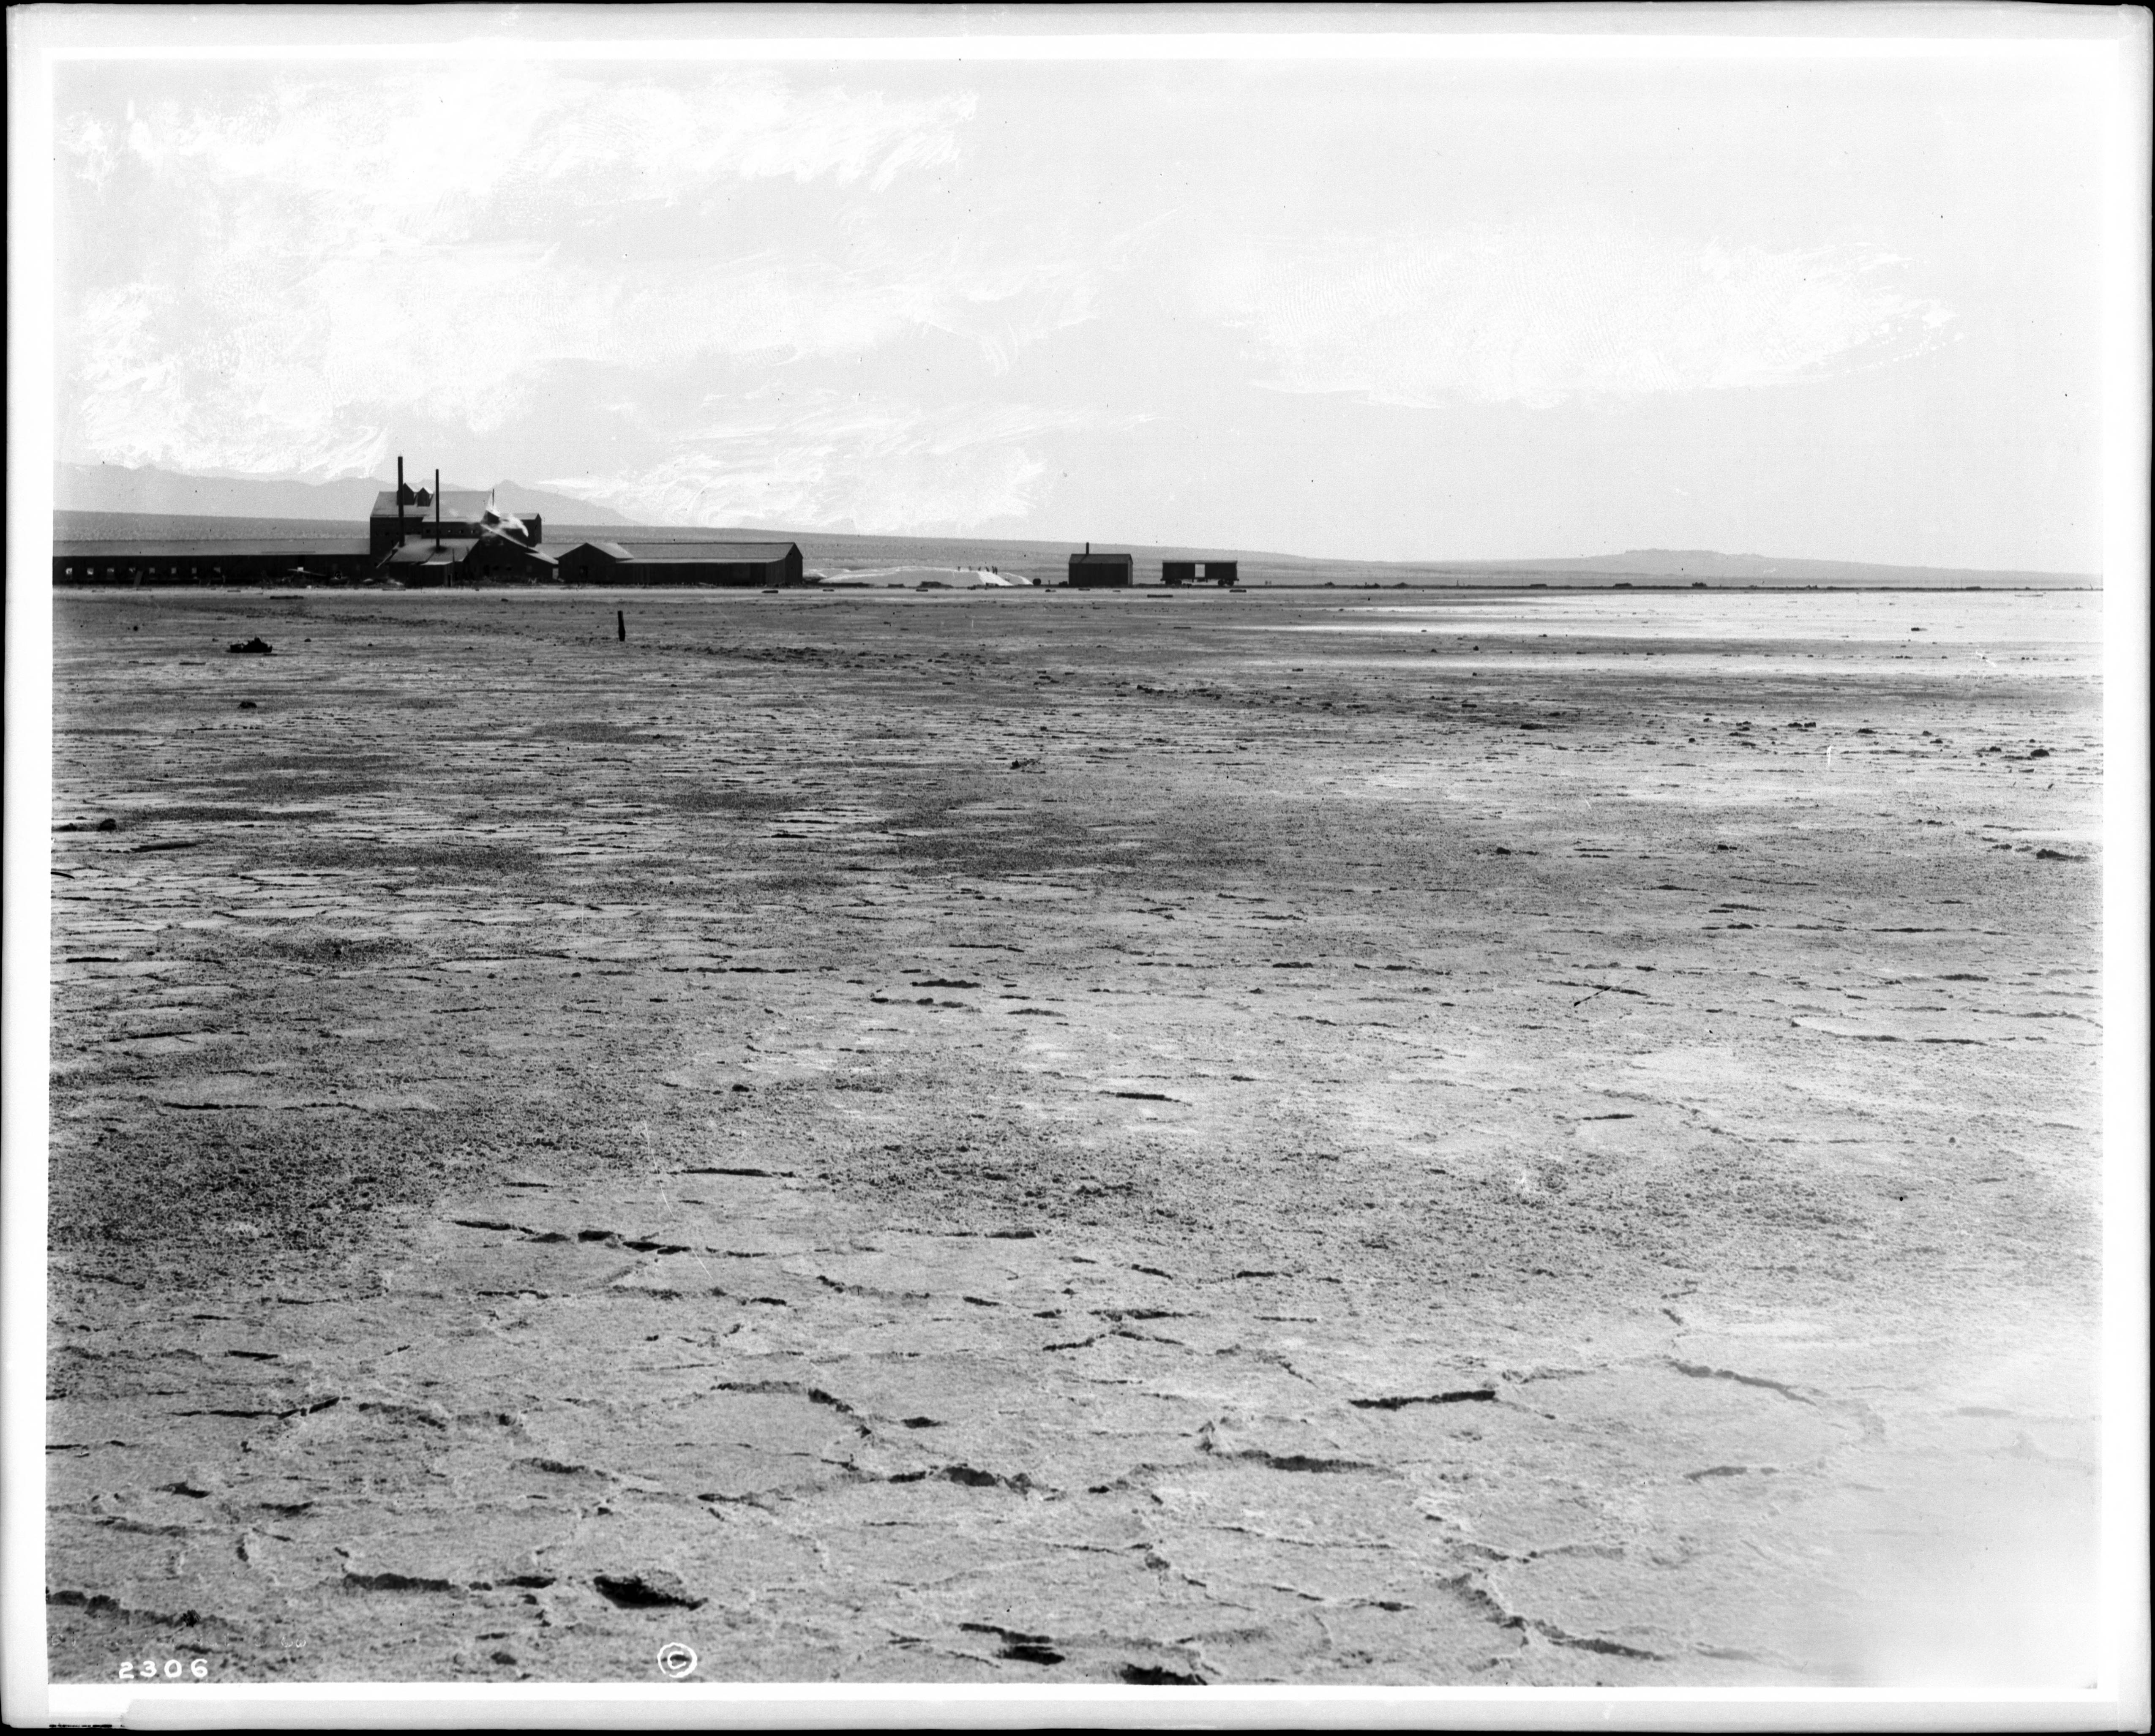 File:The Salt Works on the Salton Sea, Colorado Desert, east of Palm